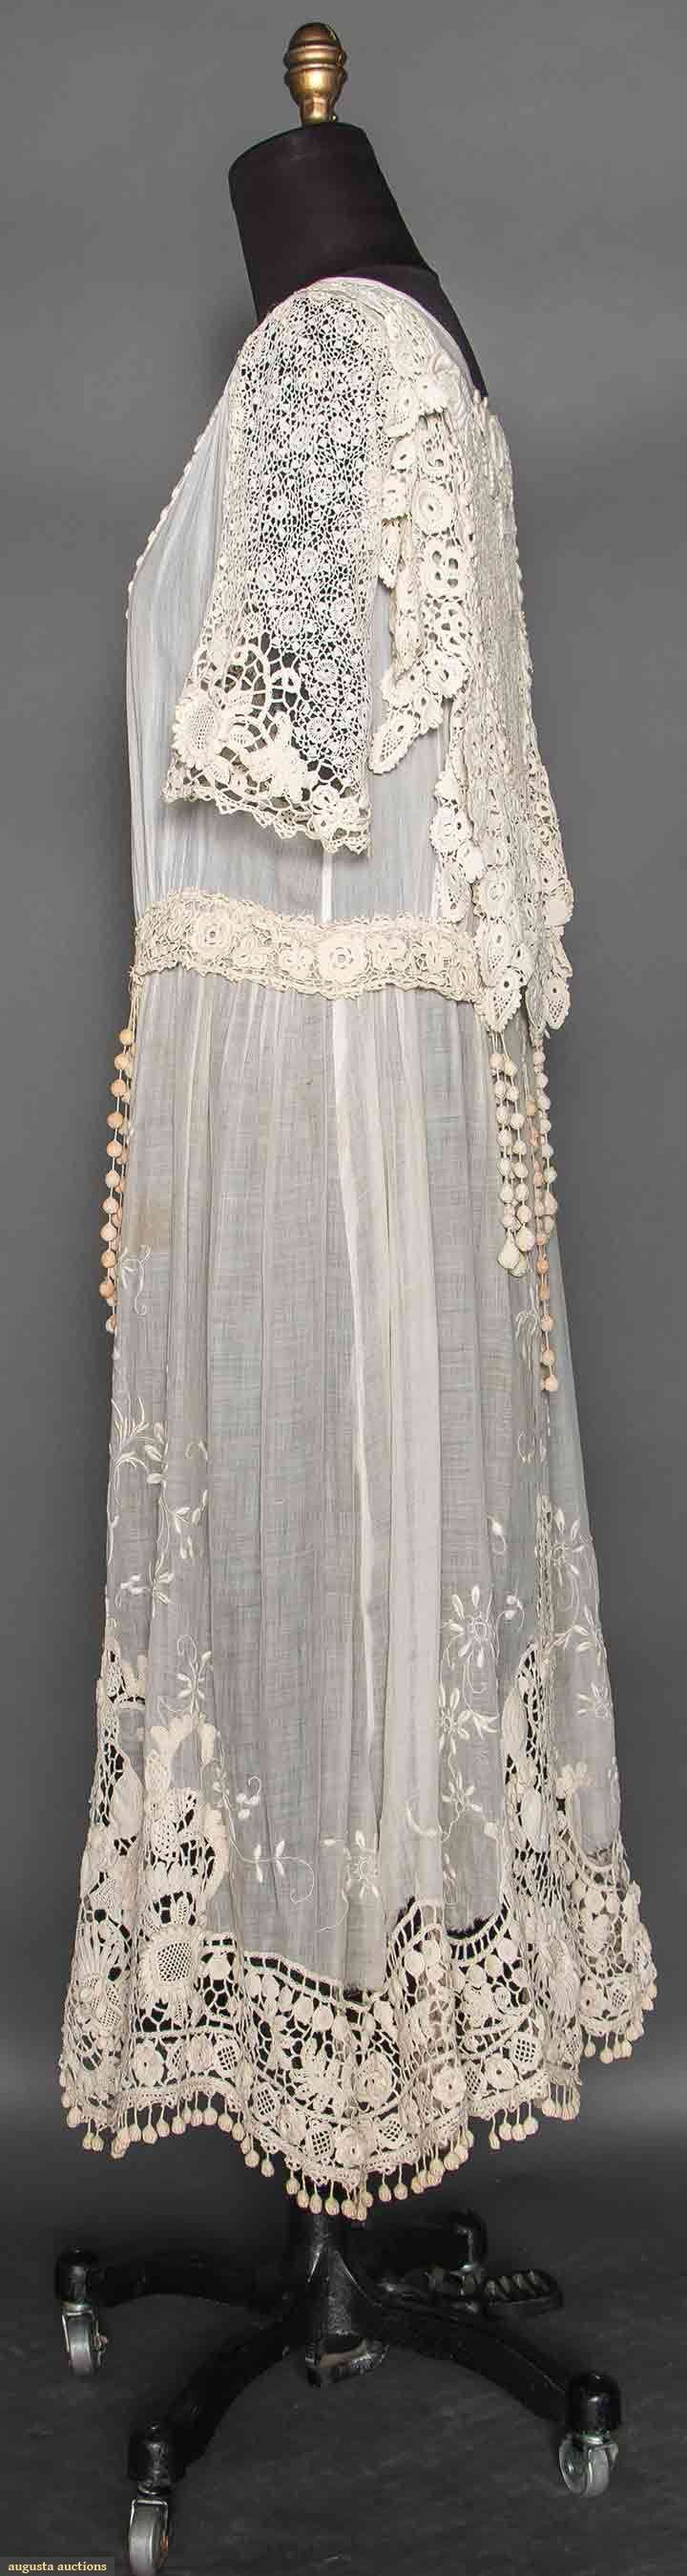 Irish Lace Tea Gown, C. 1918, Augusta Auctions, April 8, 2015 NYC, Lot 93